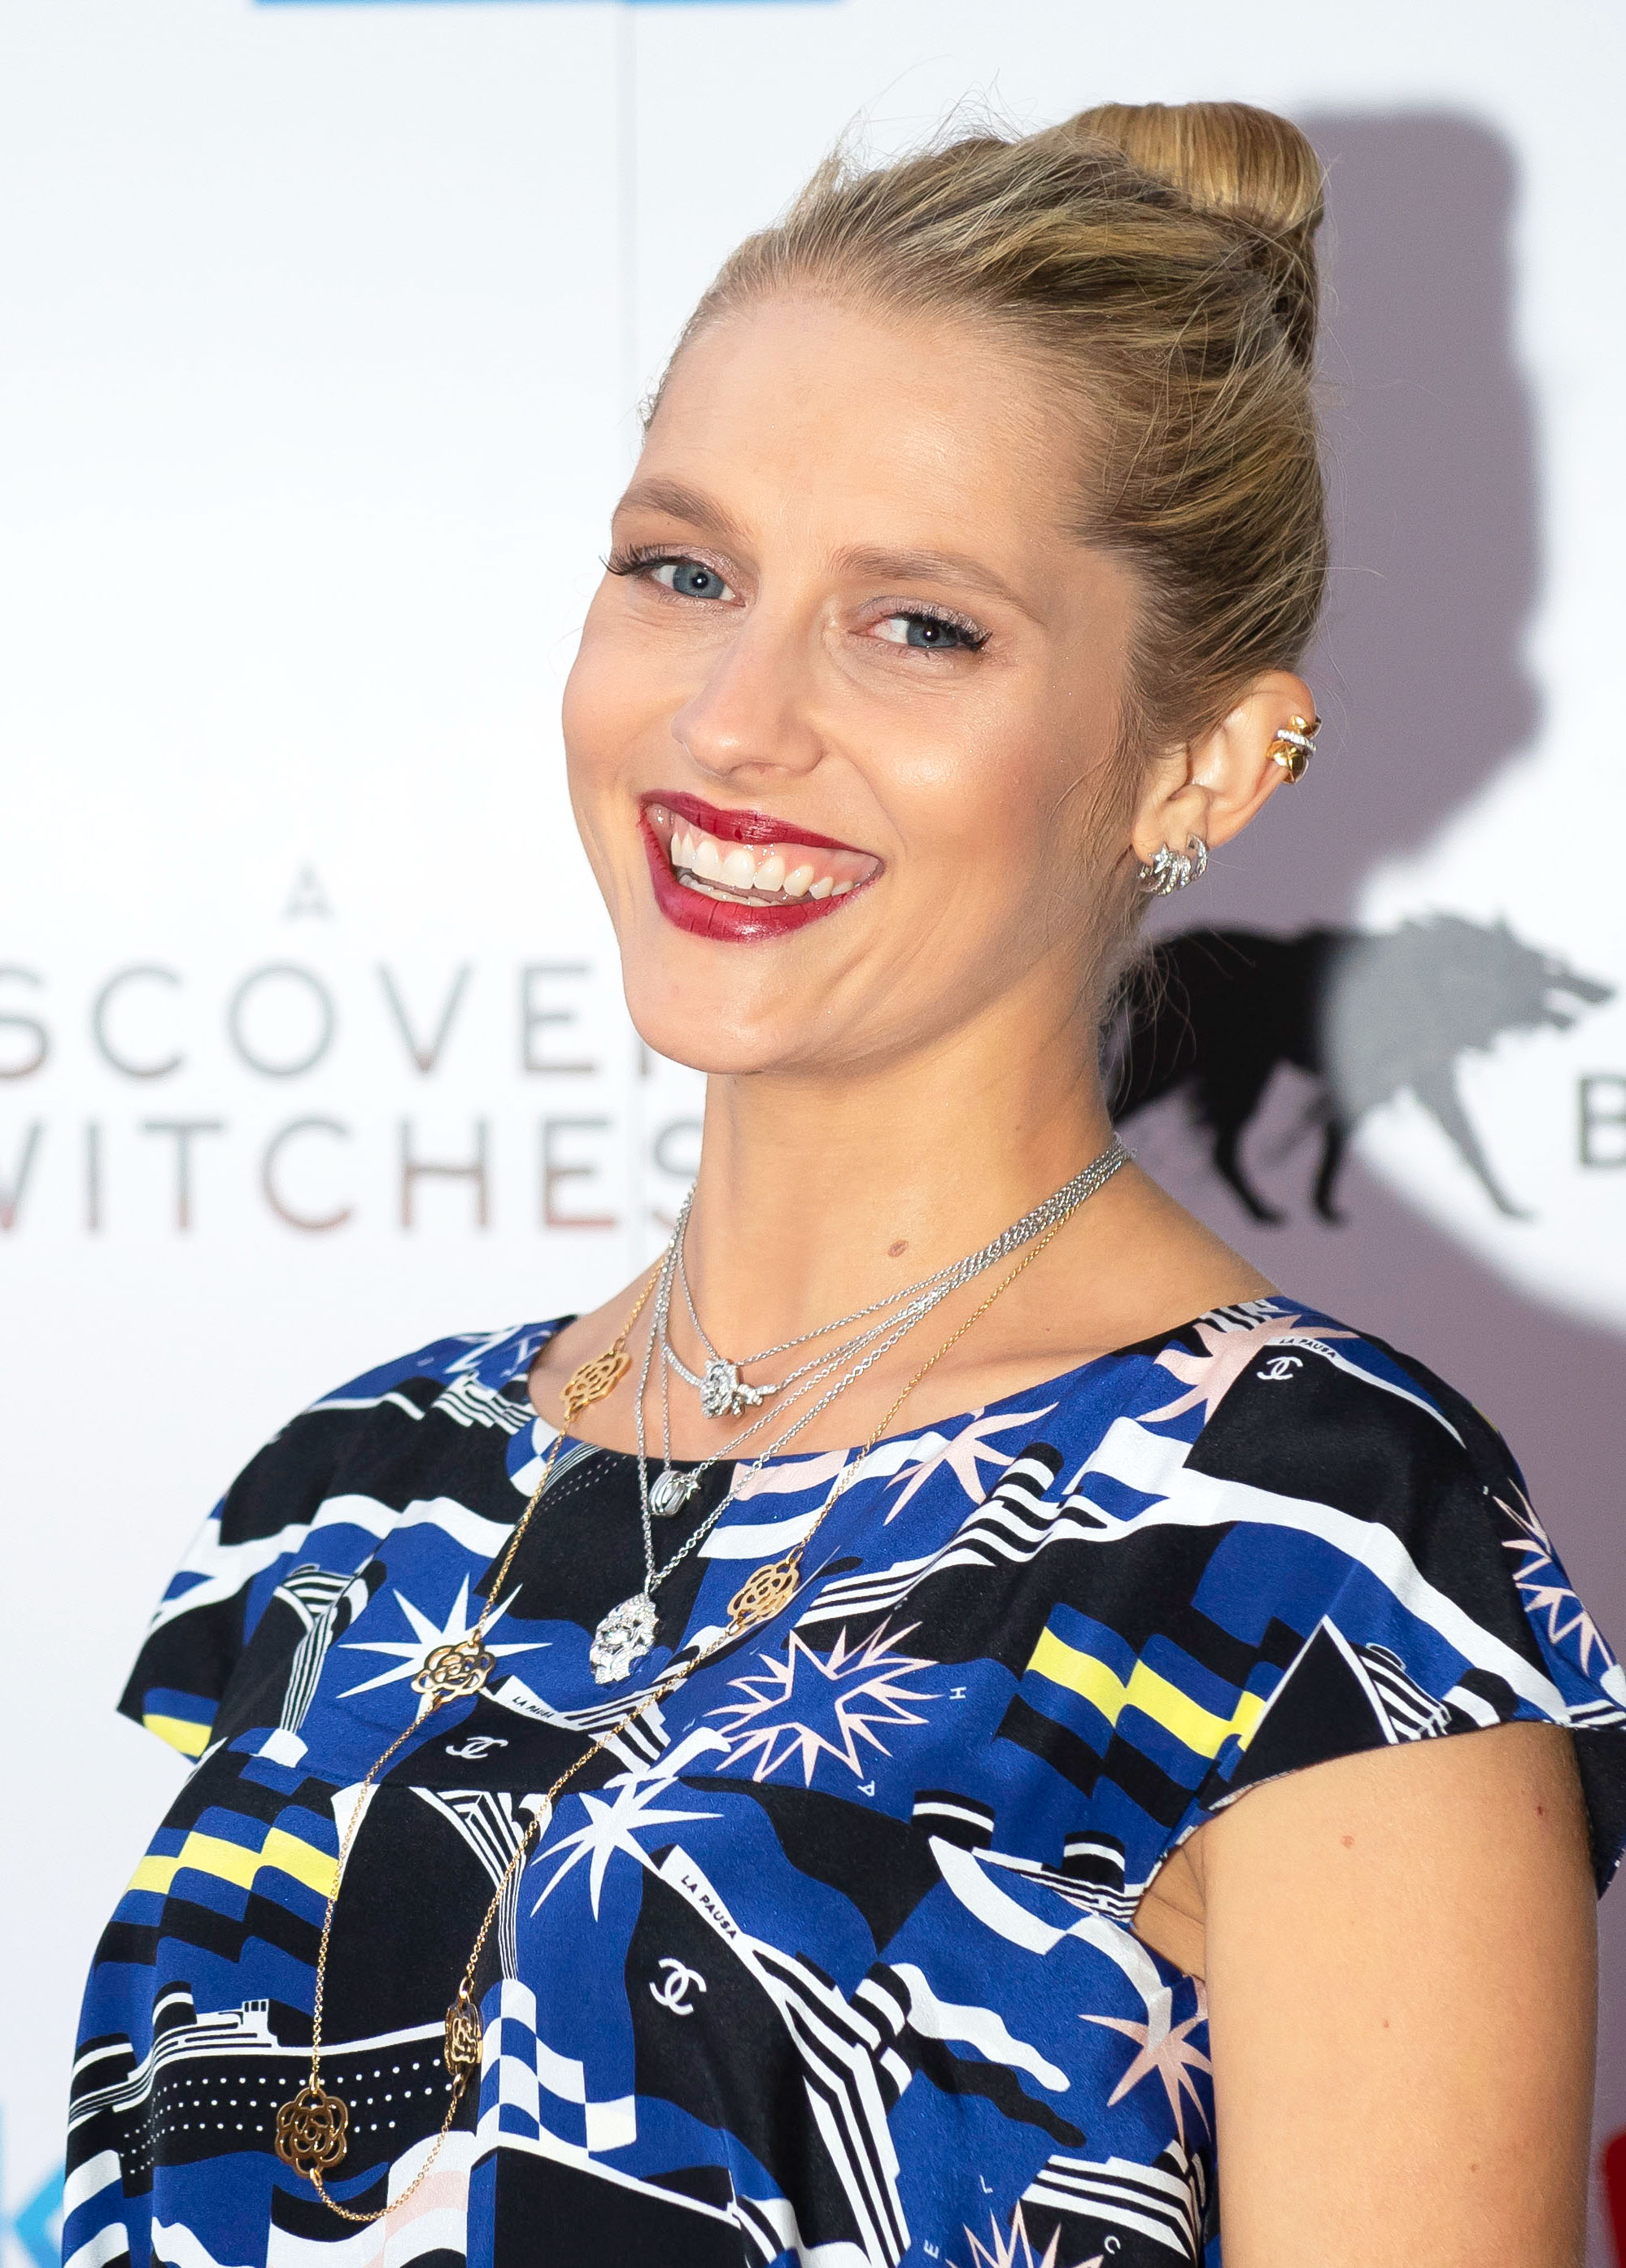 Teresa Palmer - CARDIFF, WALES – SEPTEMBER 05: Teresa Palmer attends the UK Premiere of 'A Discovery Of Witches' at Cineworld on September 5, 2018 in Cardiff, Wales. (Photo by Matthew Horwood/Getty Images)